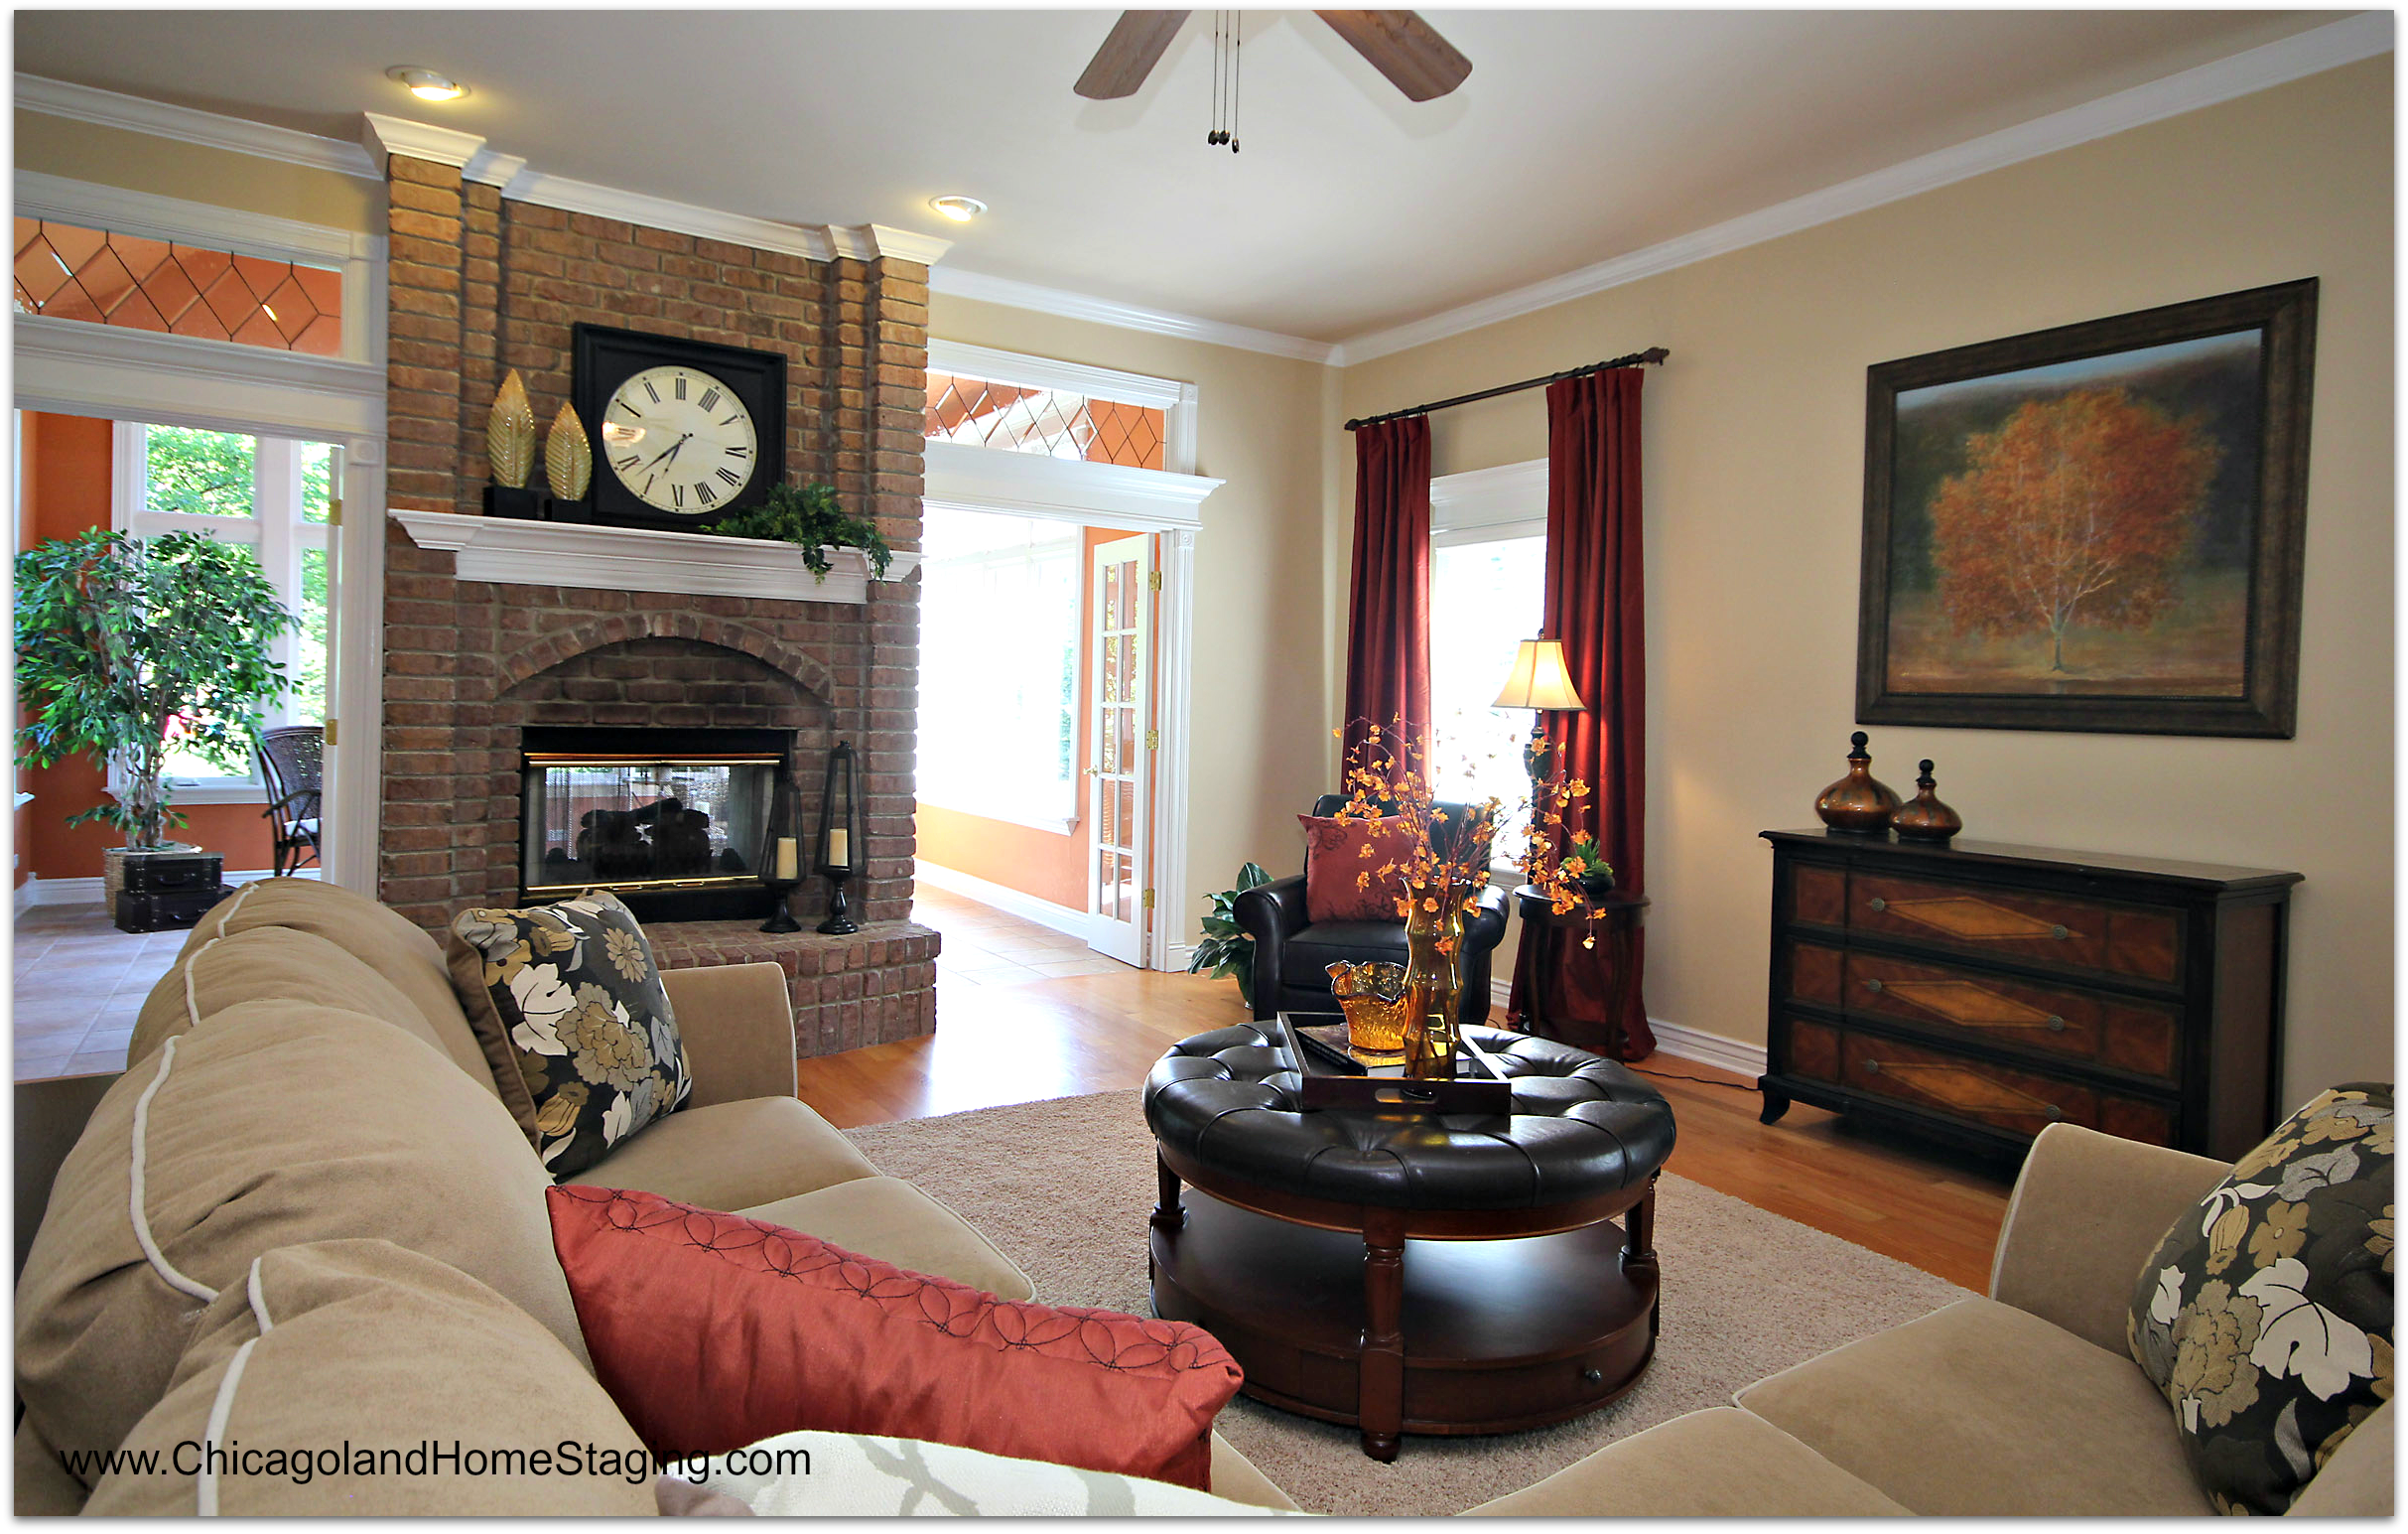 Chicagoland home staging tips